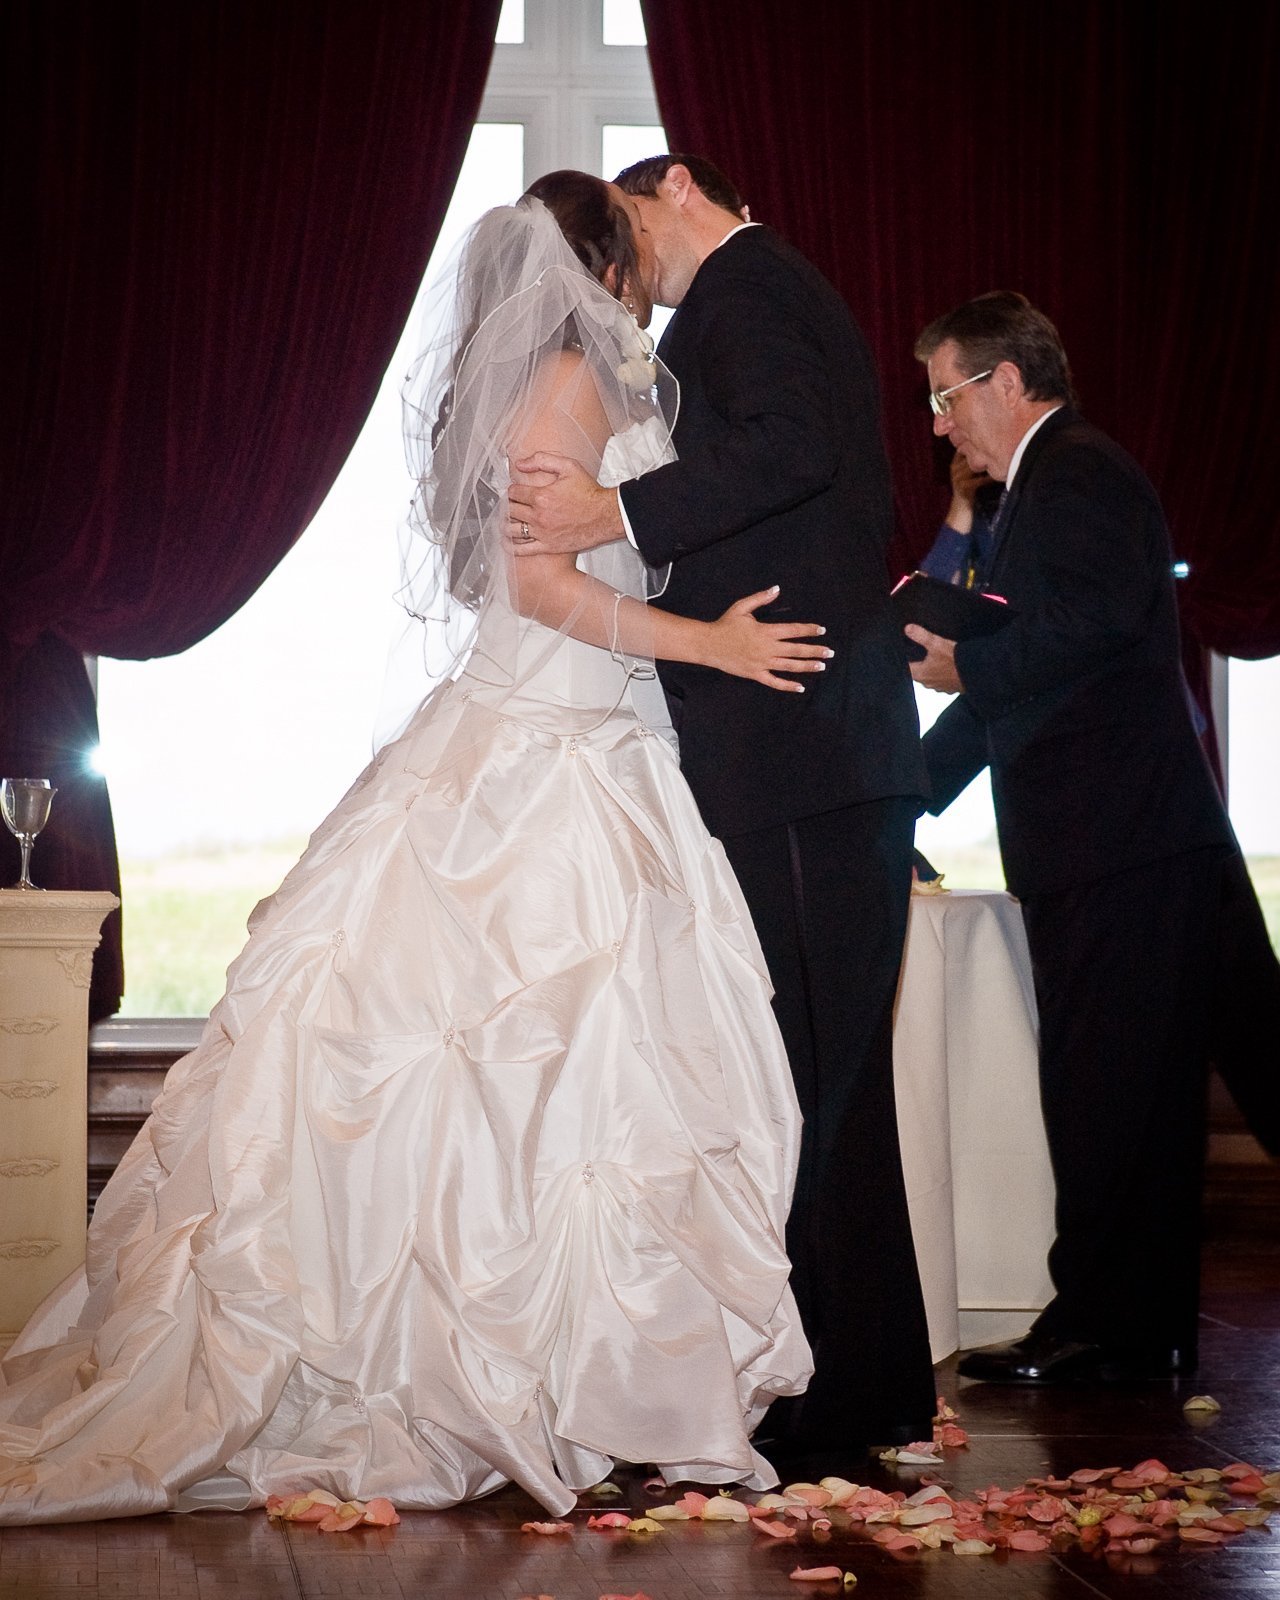 Michael-Napier-Weddings-Traylor-Cohen-Wedding-Album- (13).jpg